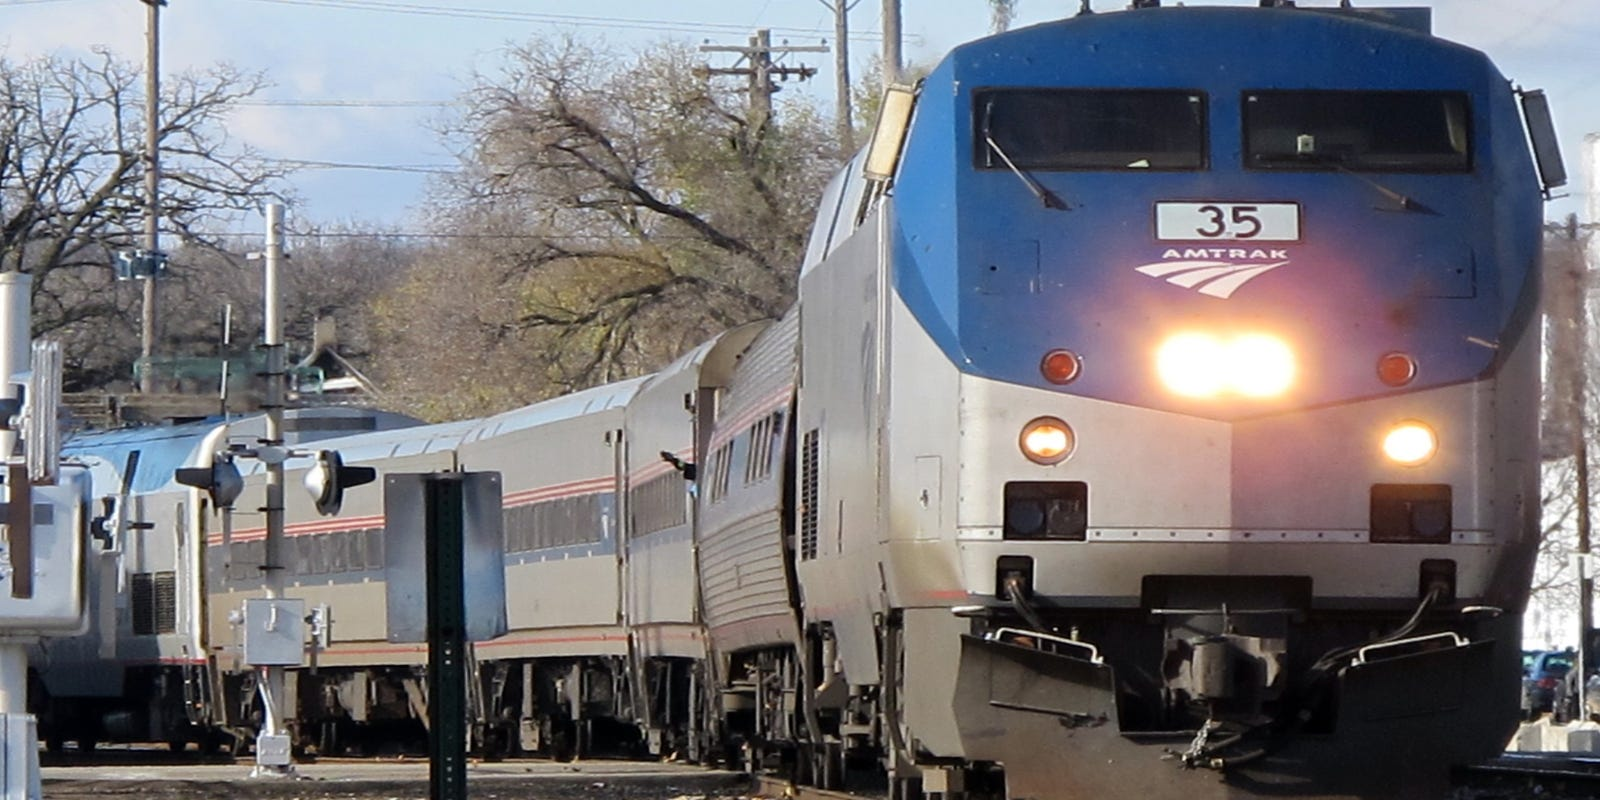 Man killed after getting struck by Amtrak train in Dearborn